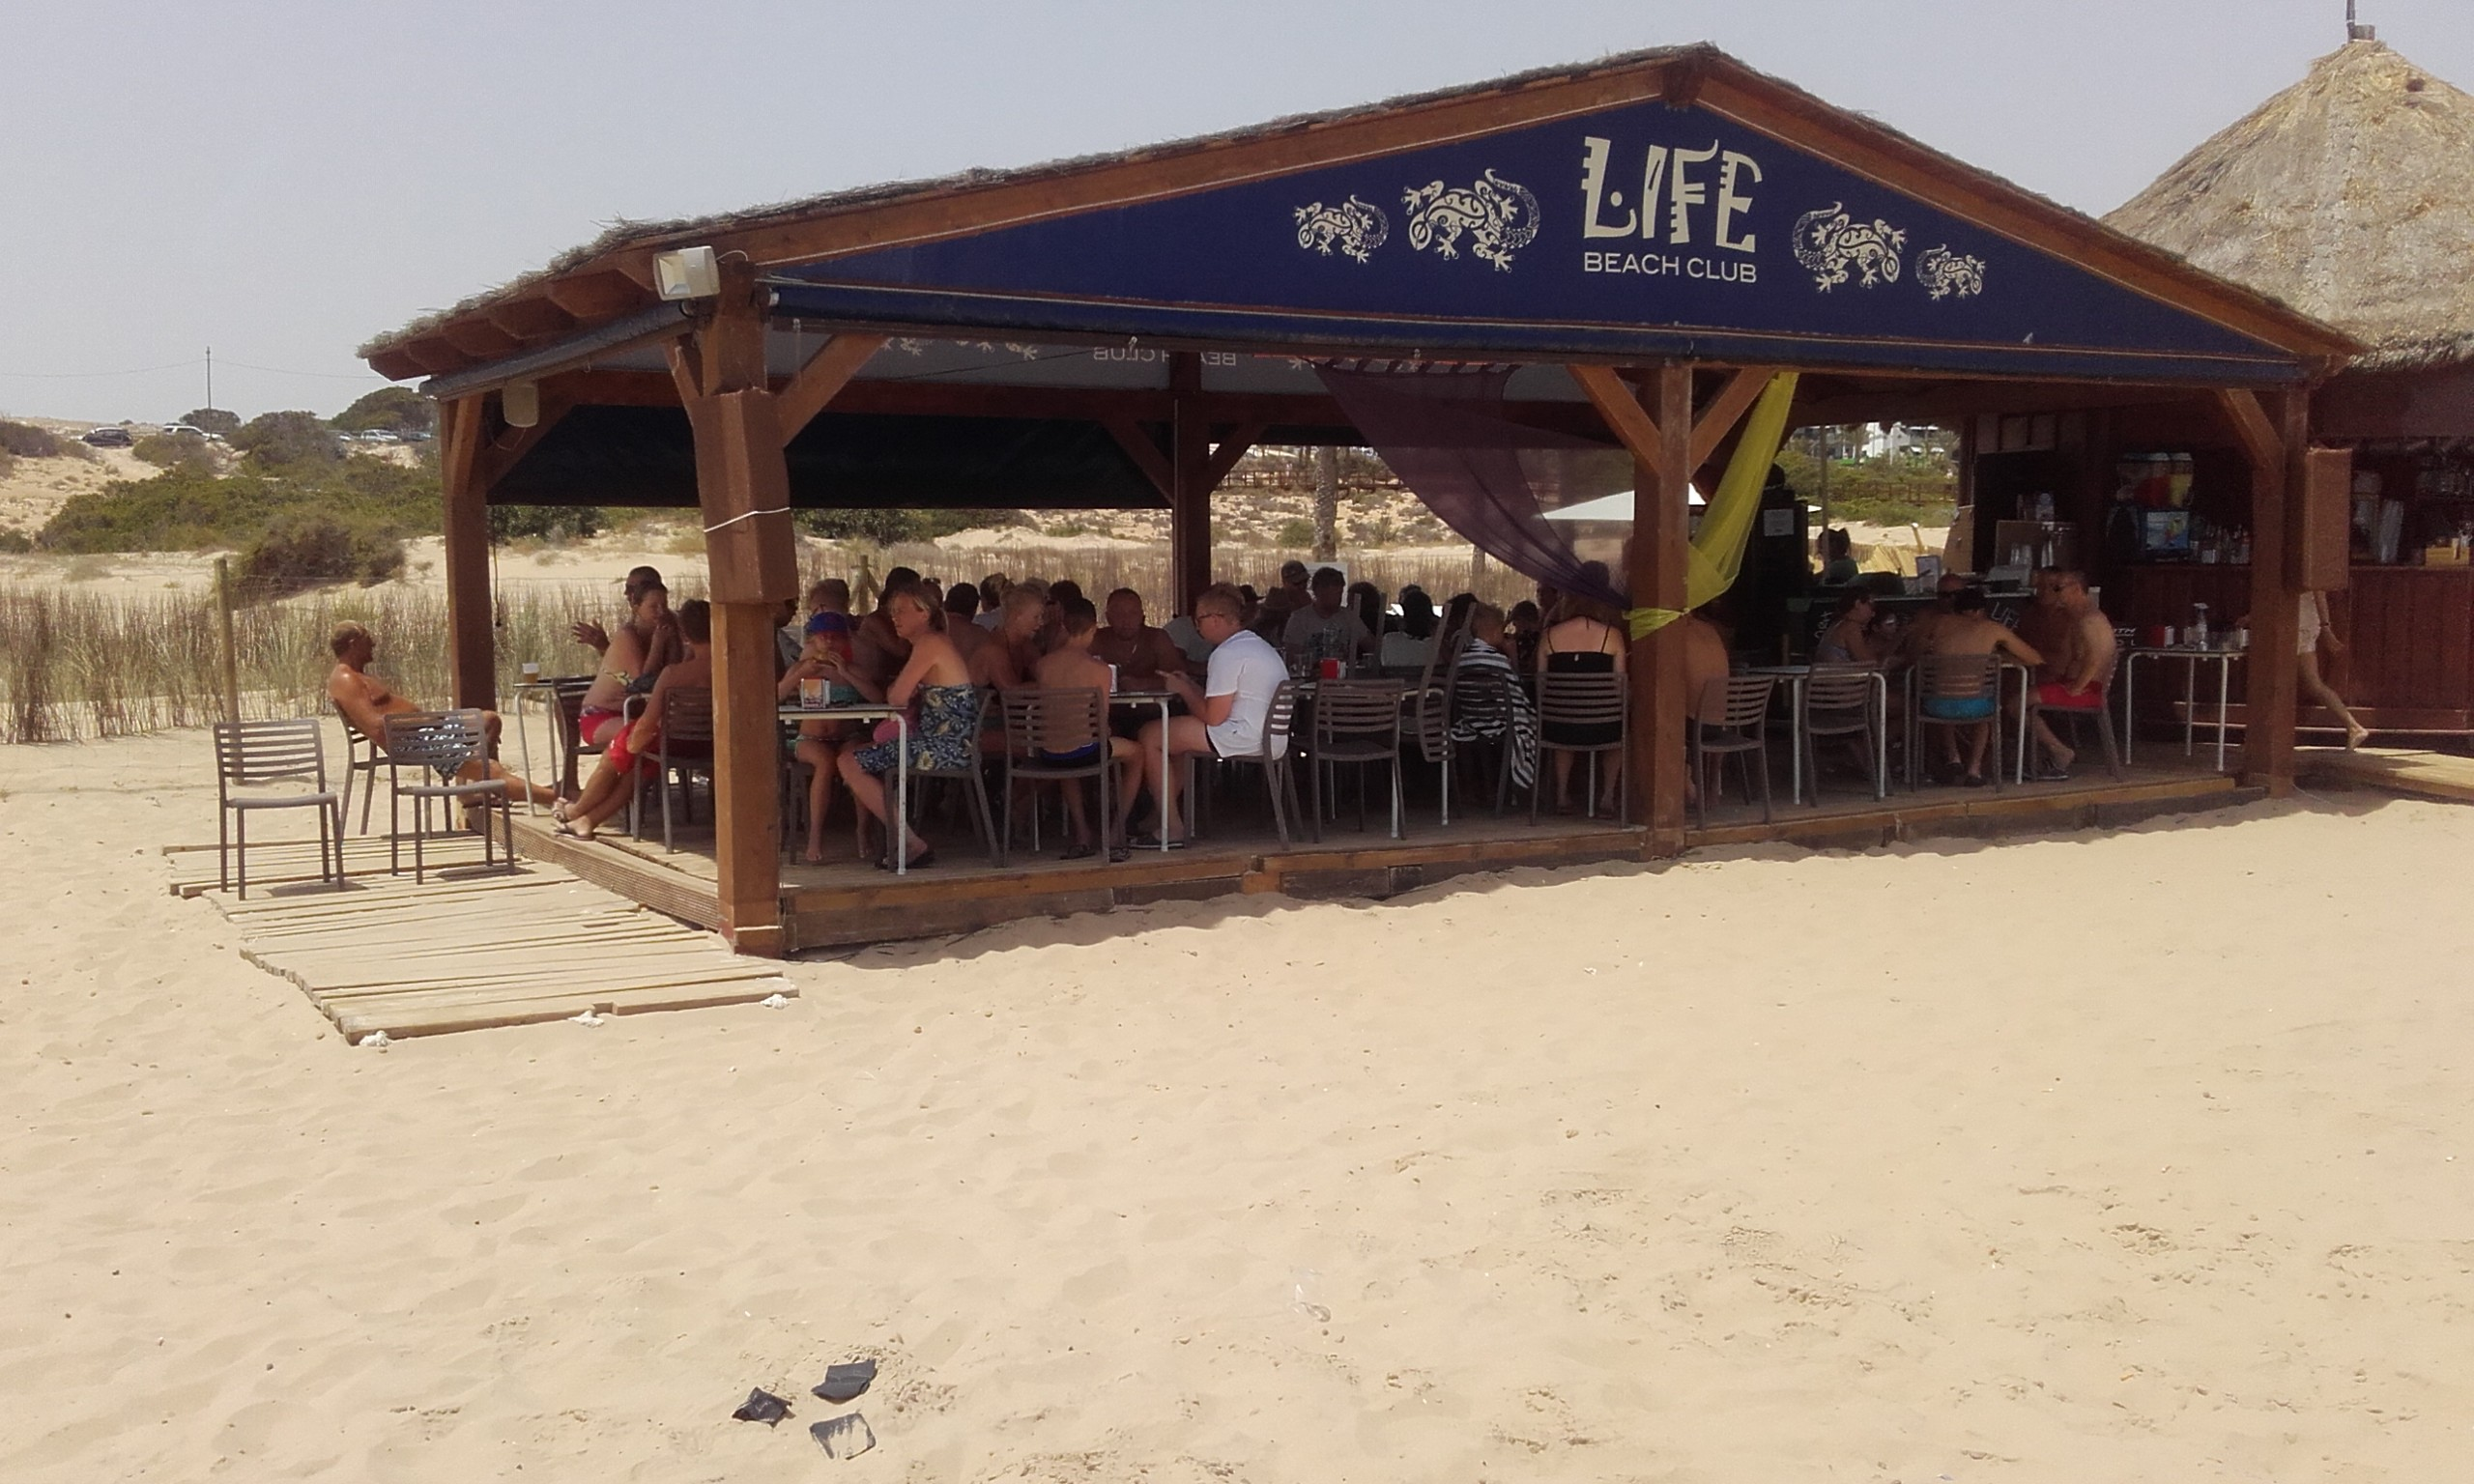 One of the beach bars